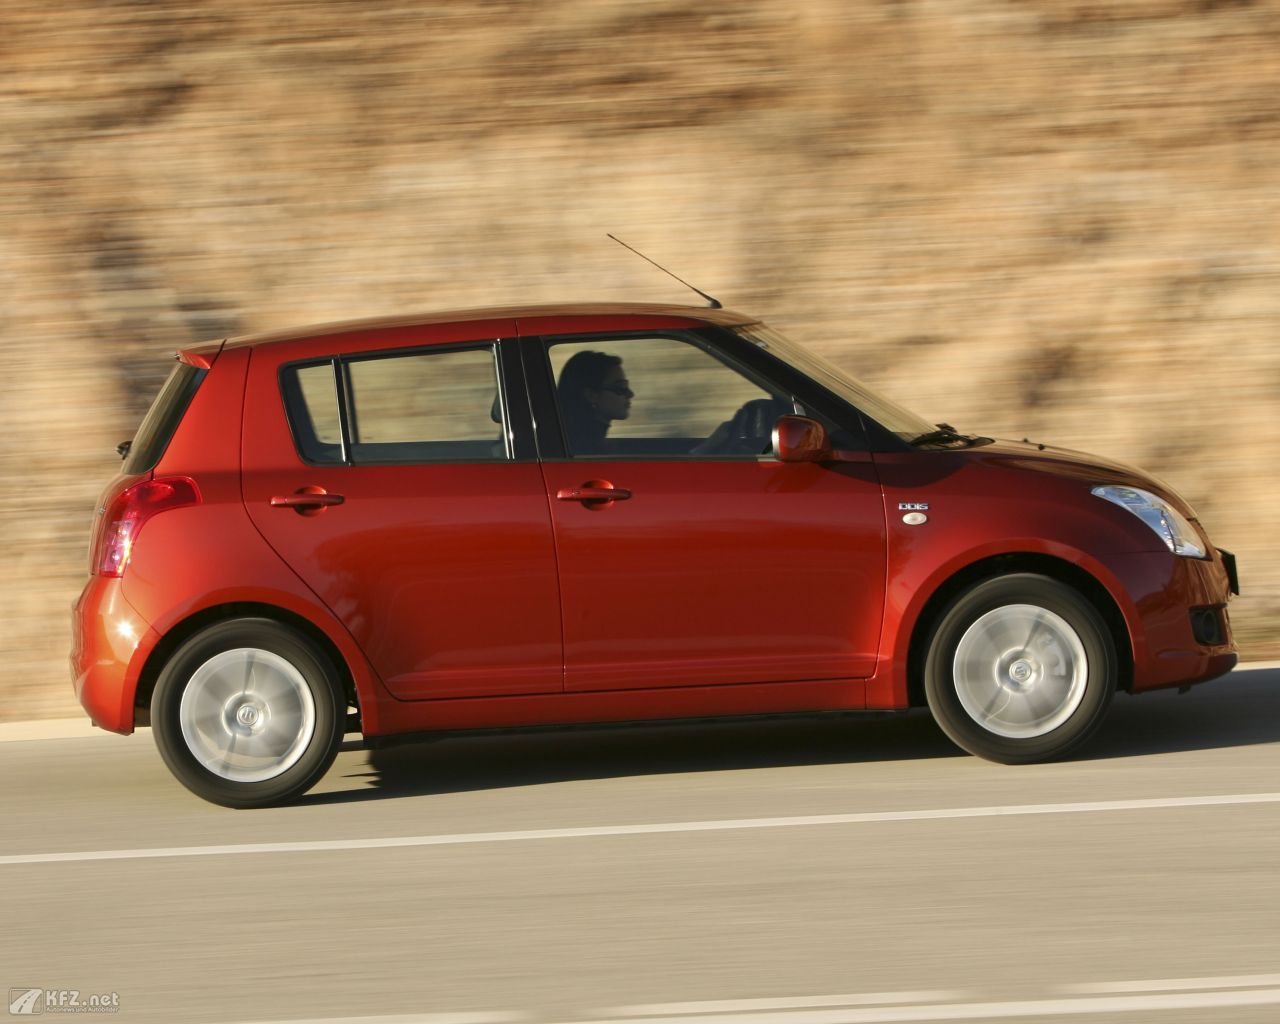 suzuki-swift-1280x1024-15